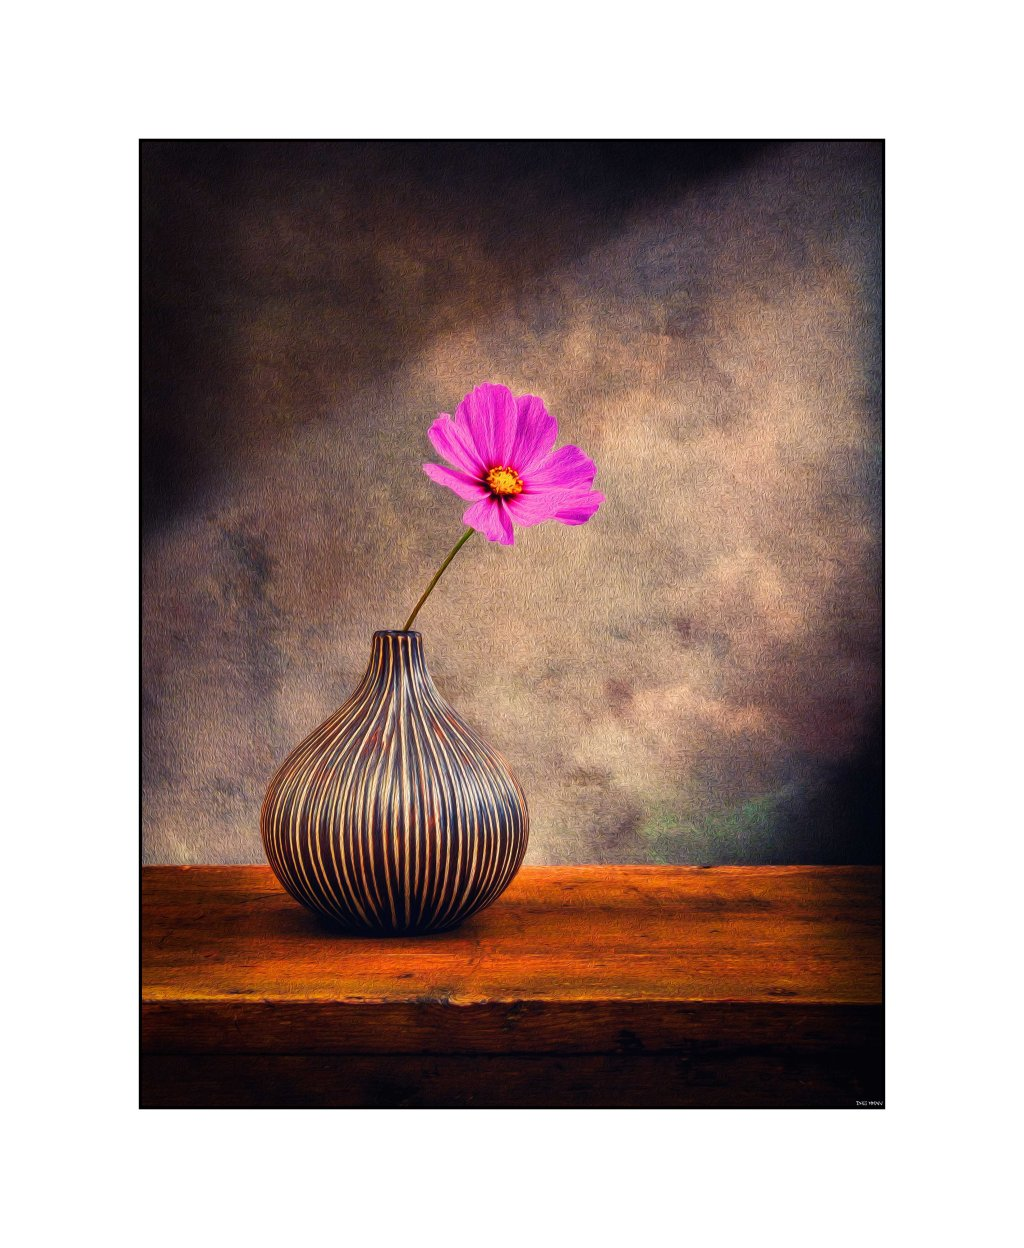 Cosmo and Vase Re-edit #1